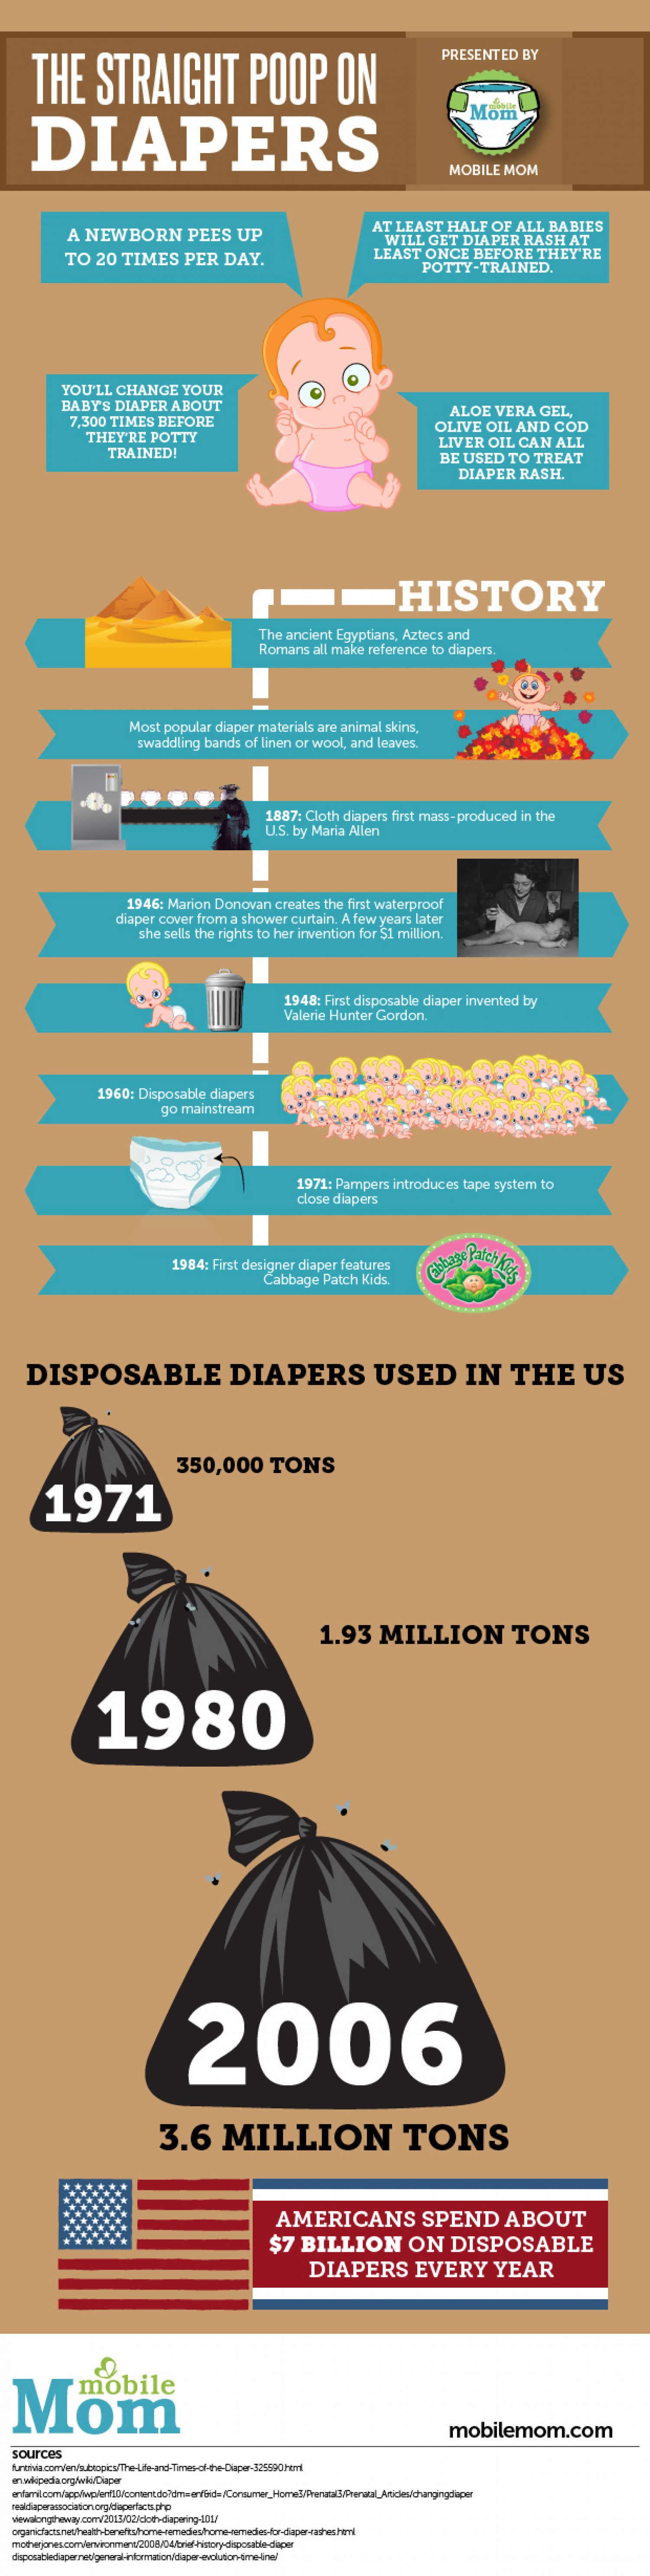 The Straight Poop On Diapers Infographic